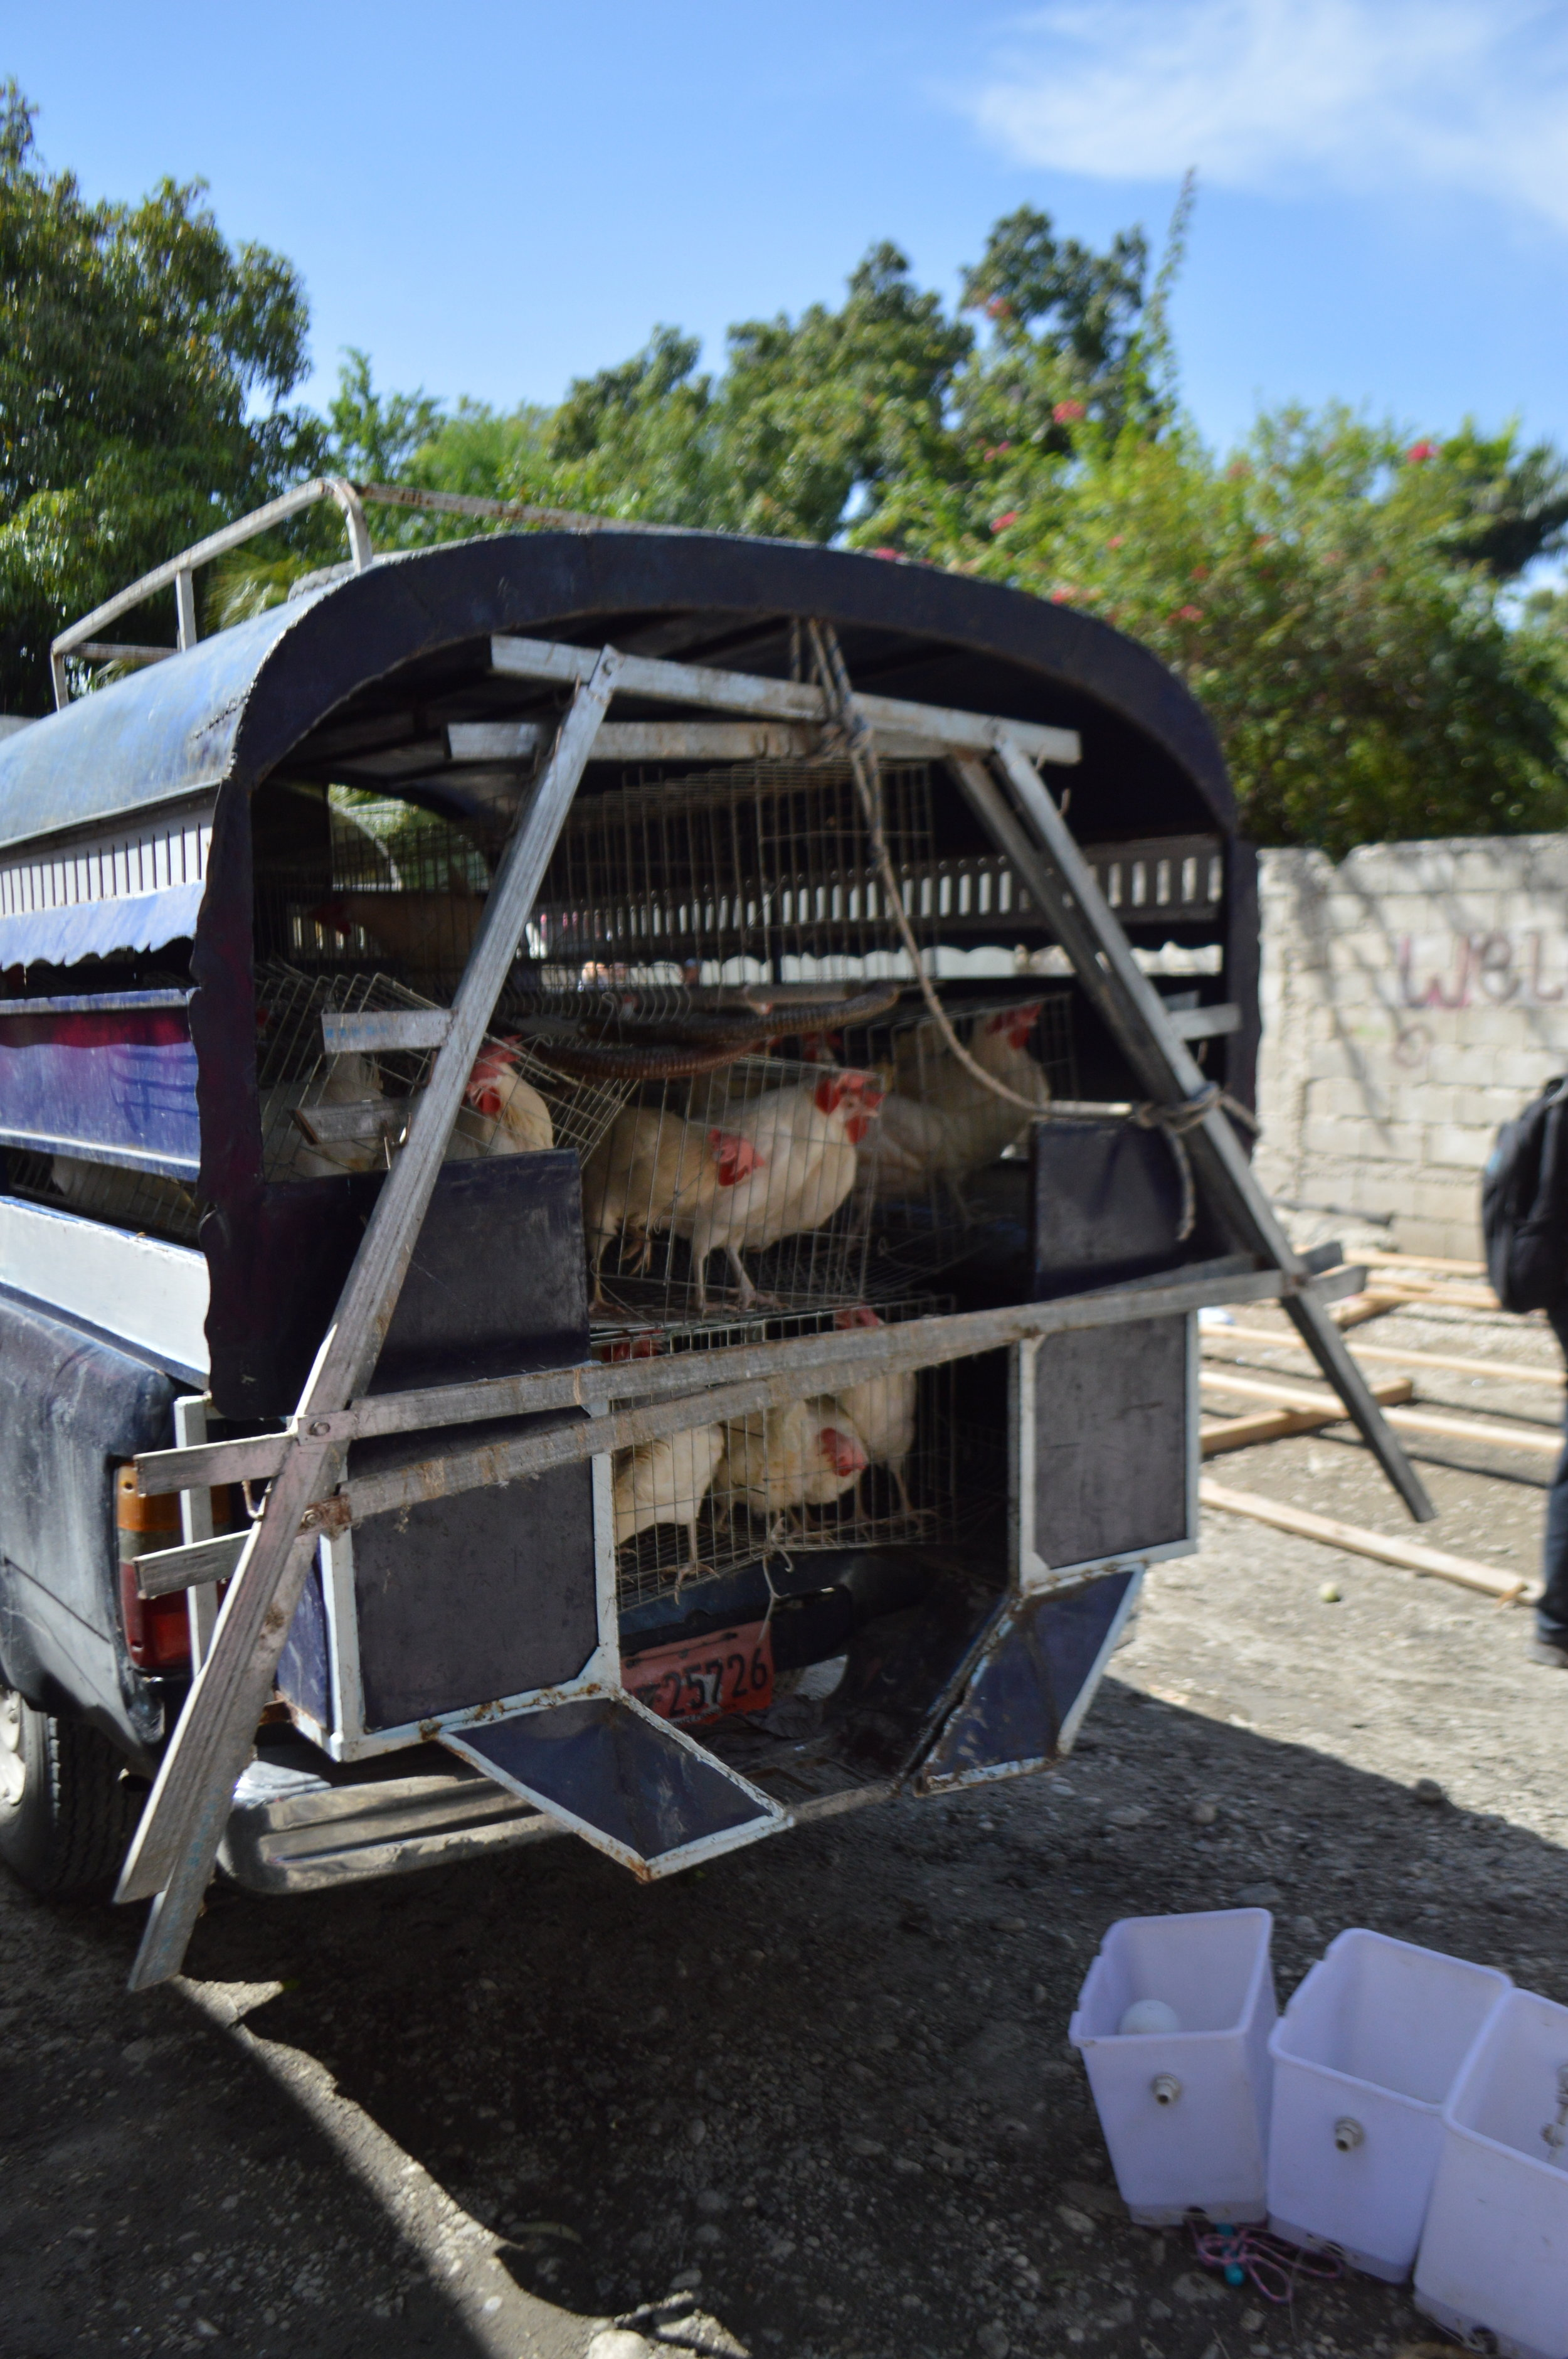 chickens on a taptap.JPG